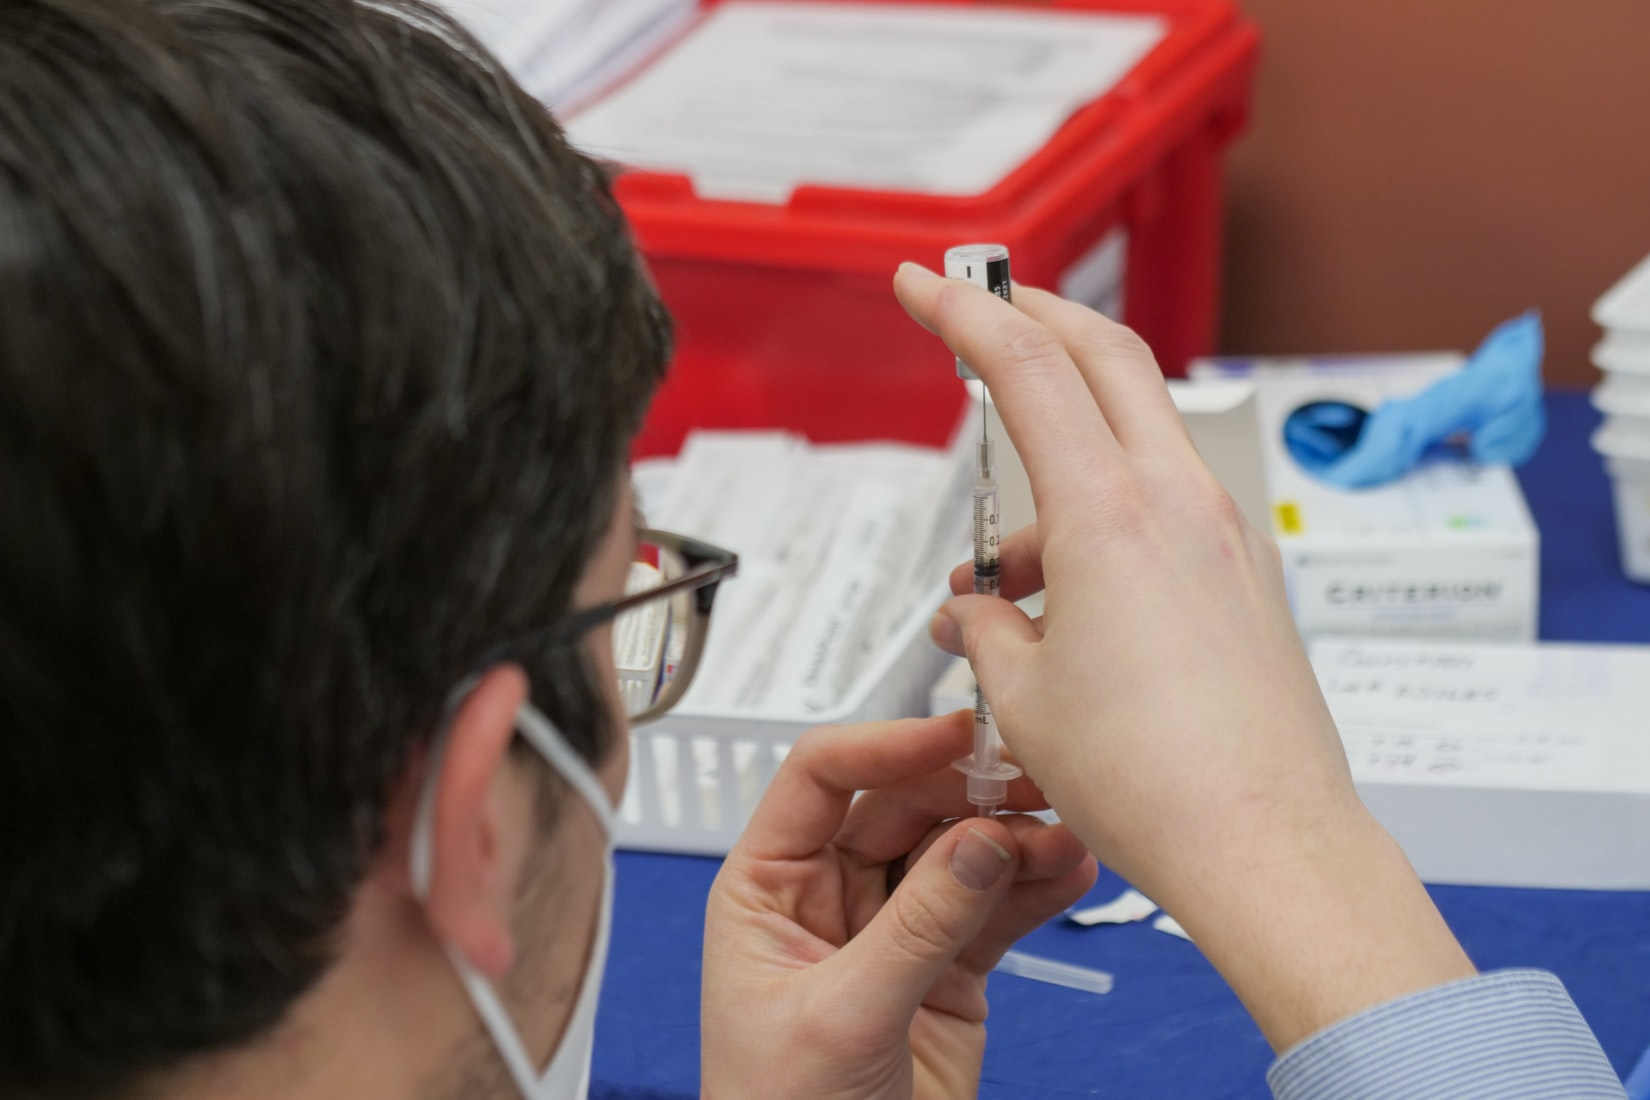 How will the coronavirus vaccine affect small businesses?